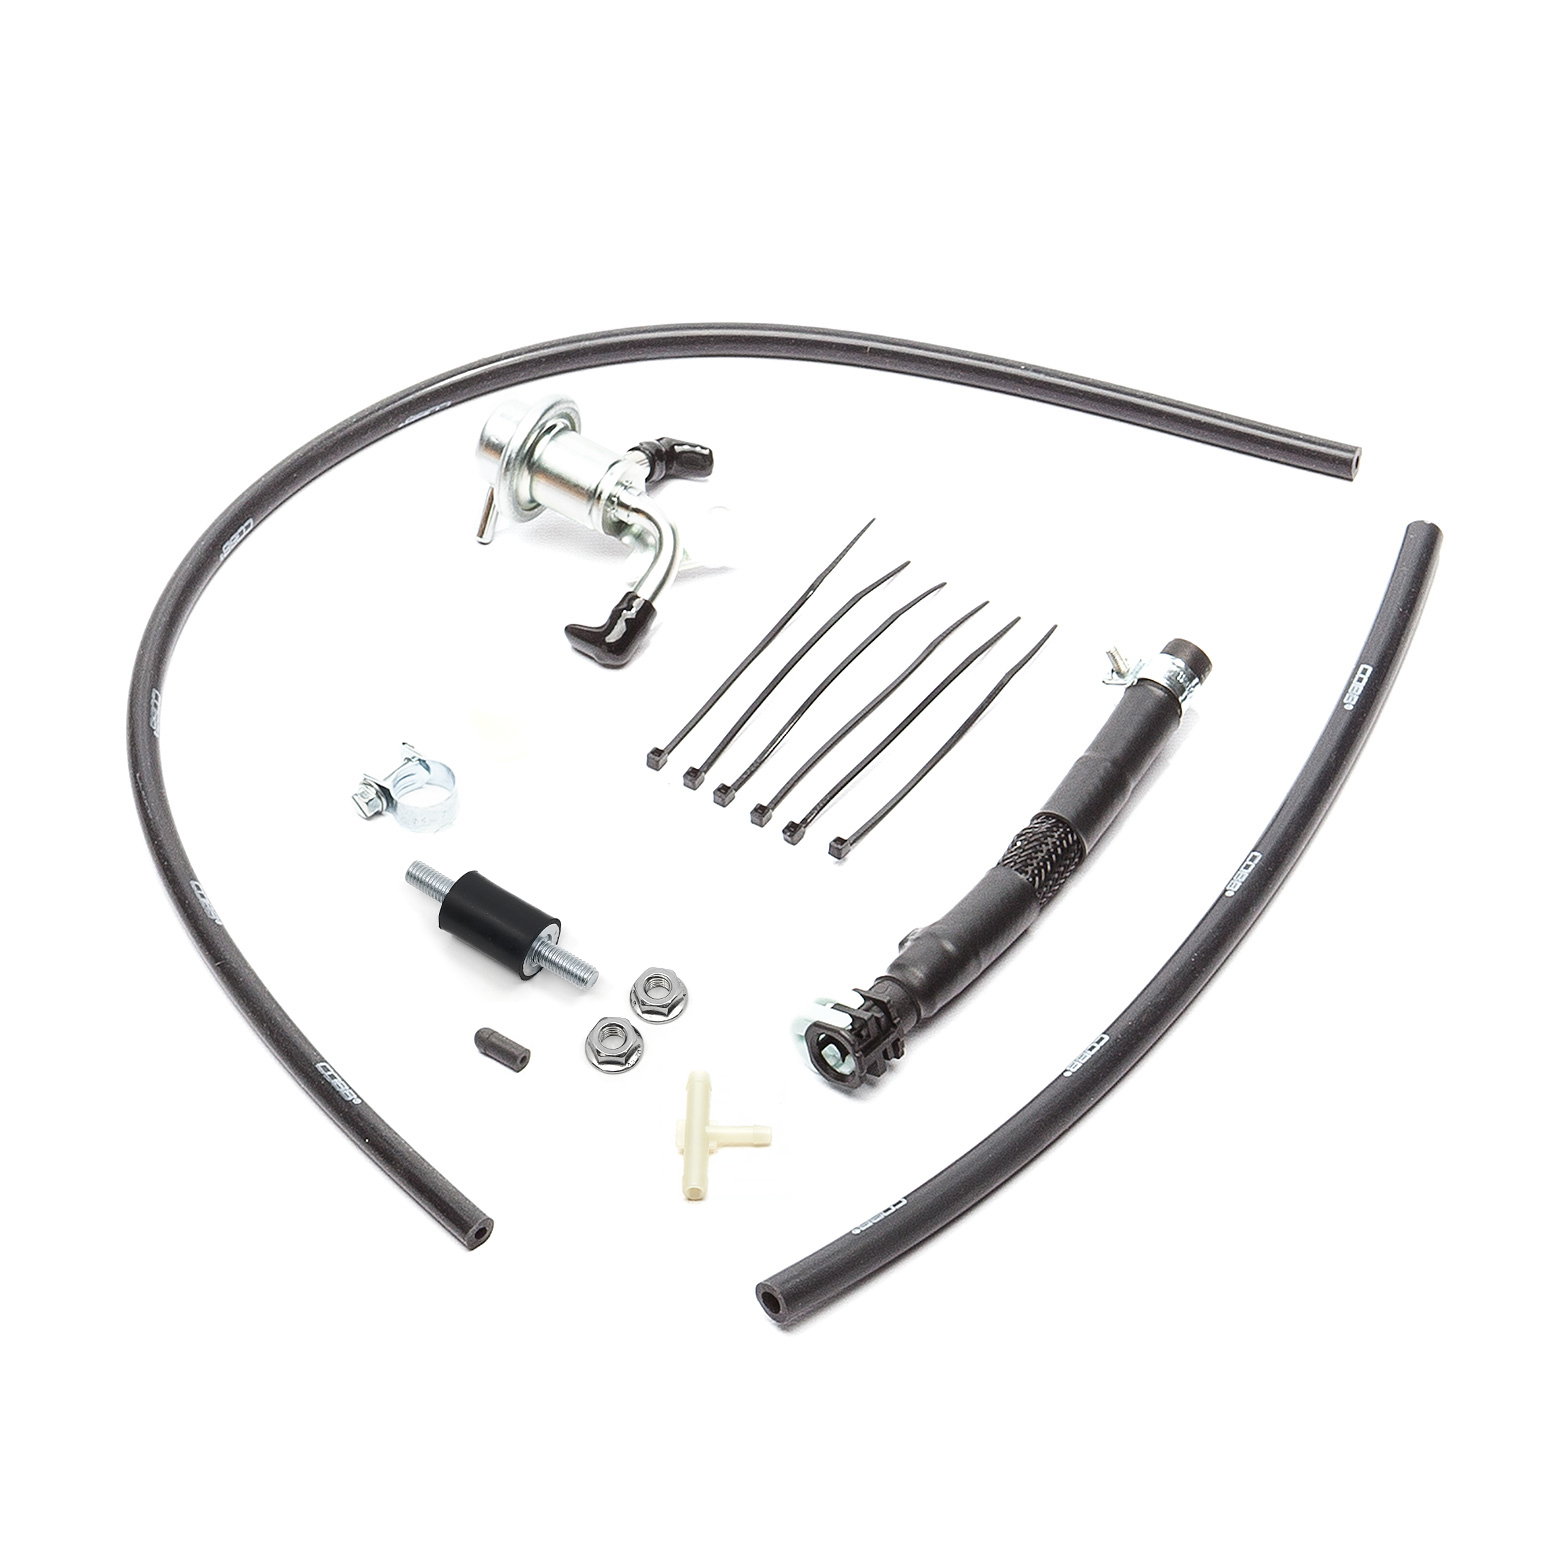 Subaru Stage 3 + Flex Fuel Power Package Titanium STI Sedan 2011-2014